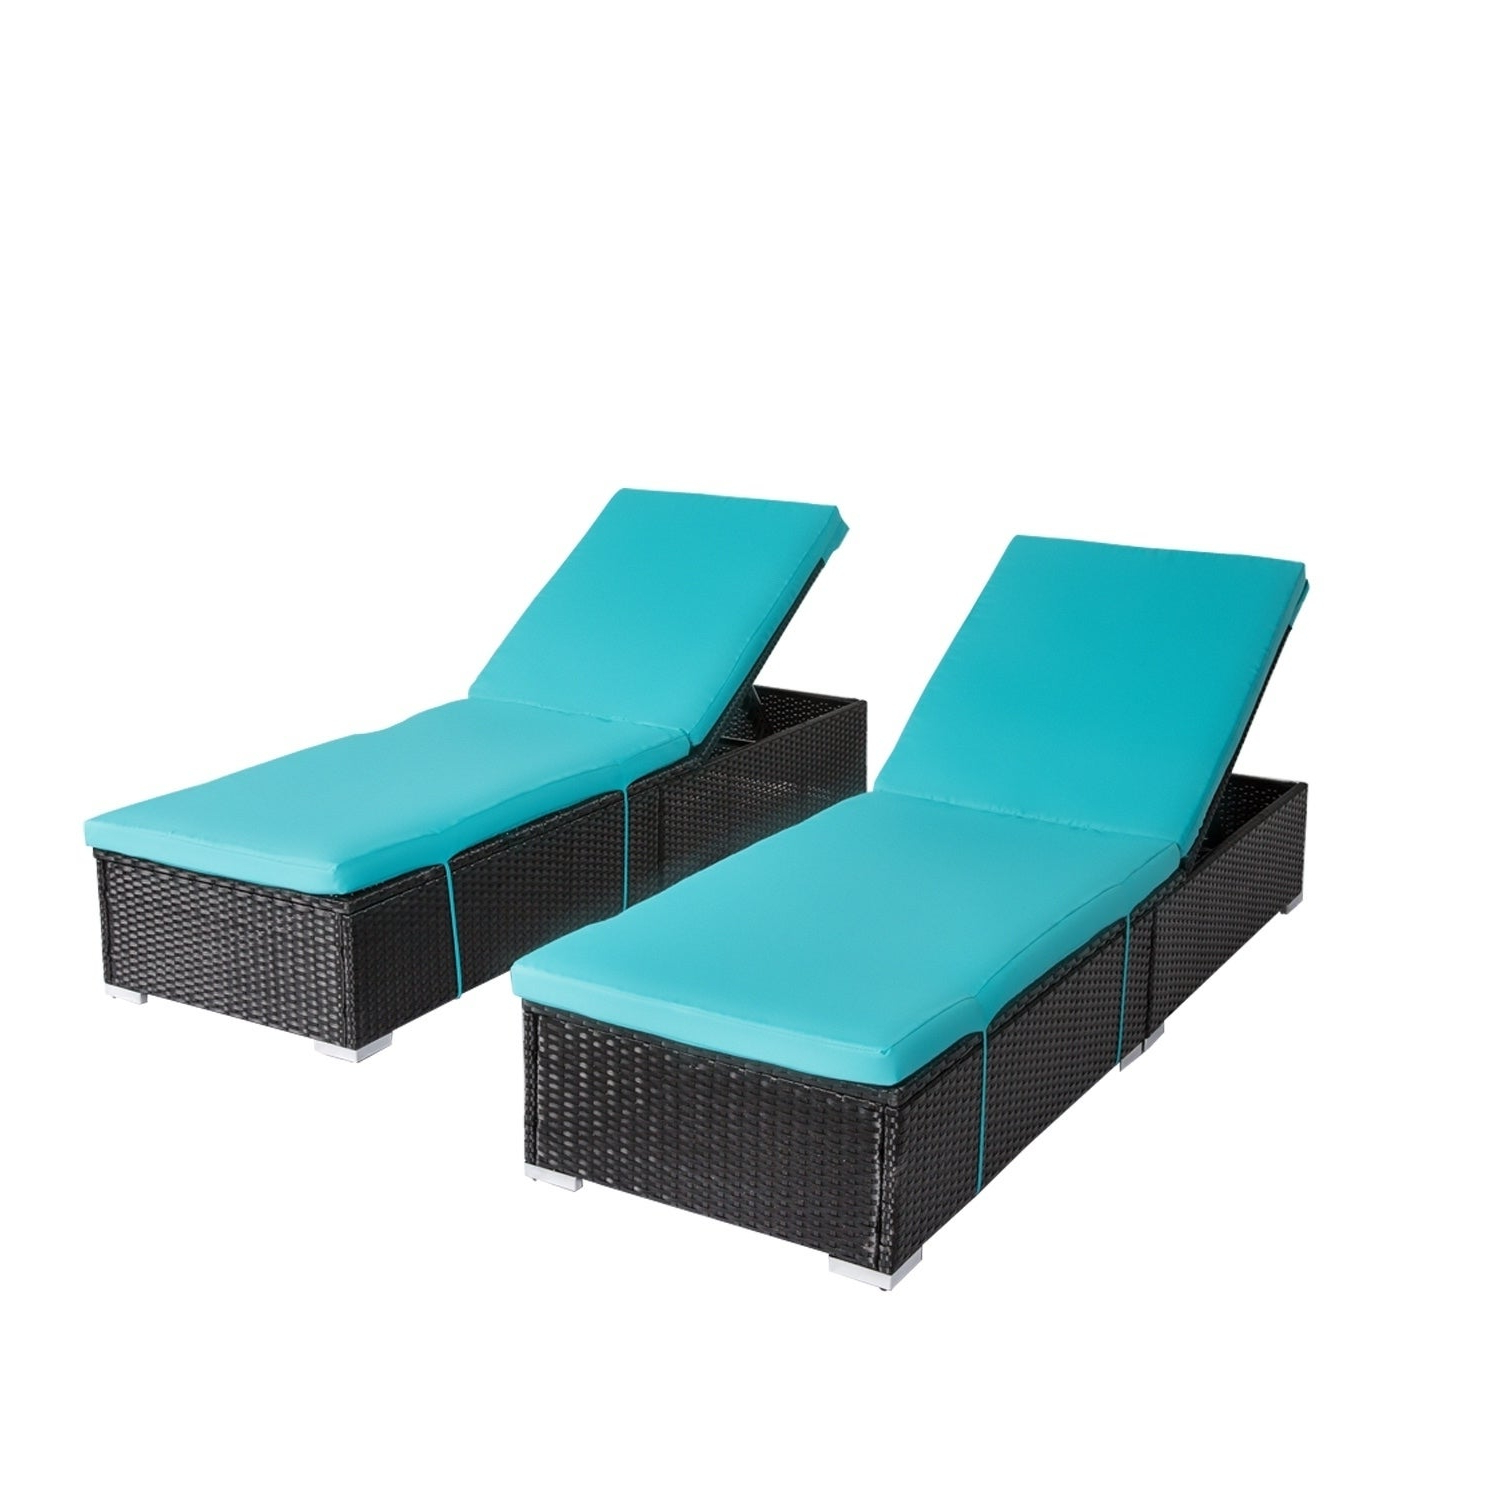 Favorite Kinbor Outdoor Adjustable Chaise Lounge Chair Pe Rattan Wicker Chaise Pool  Chairs W/cushions Inside Outdoor Adjustable Rattan Wicker Chaise Pool Chairs With Cushions (View 1 of 25)